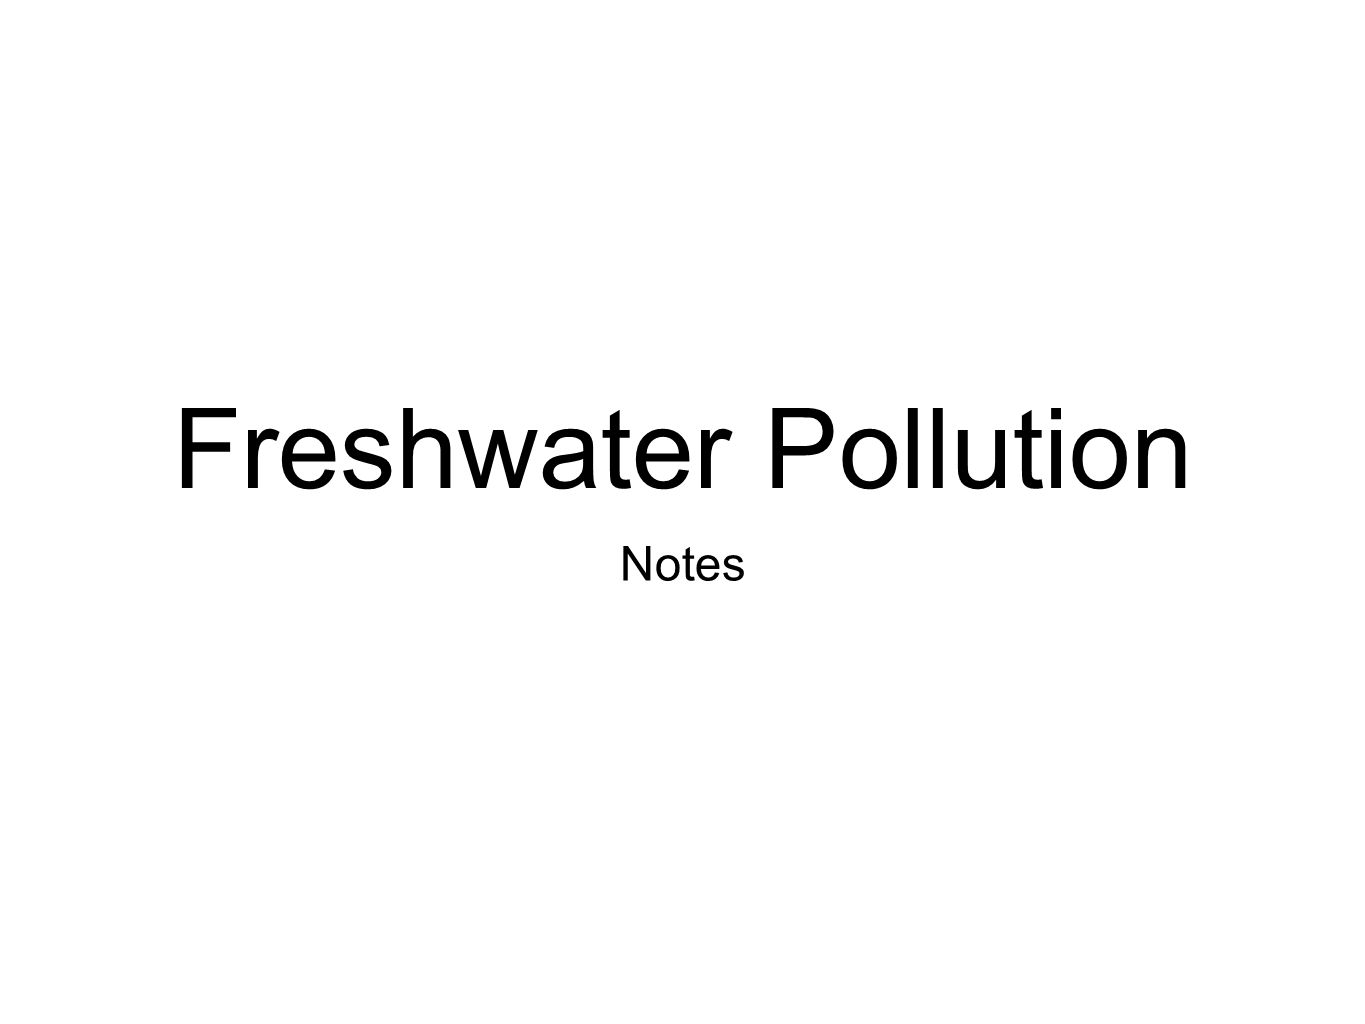 Freshwater Pollution Notes